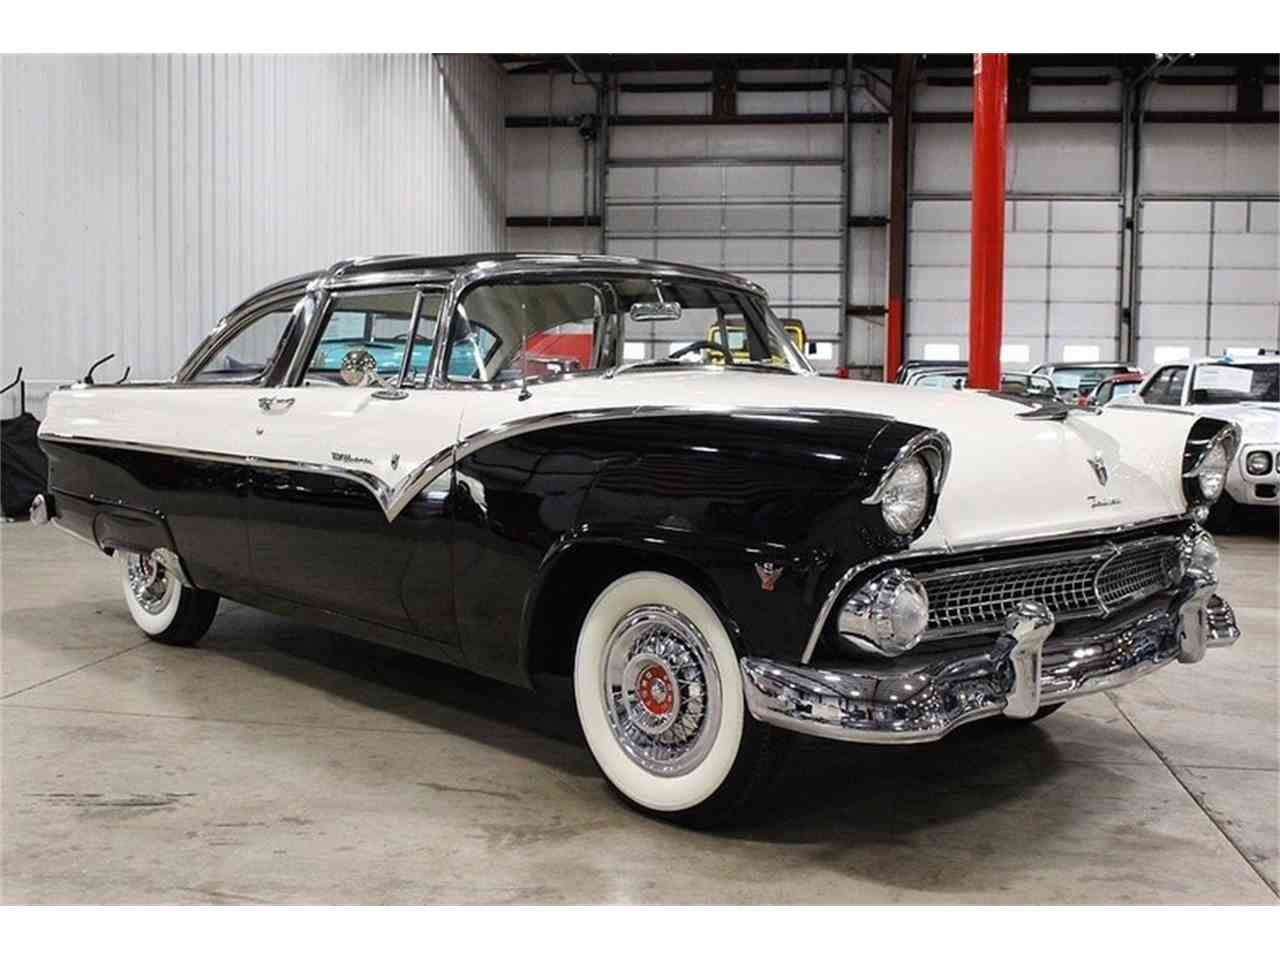 1955 ford fairlane crown victoria blog cars on line - 1955 Ford Crown Victoria For Sale Cc 1034745